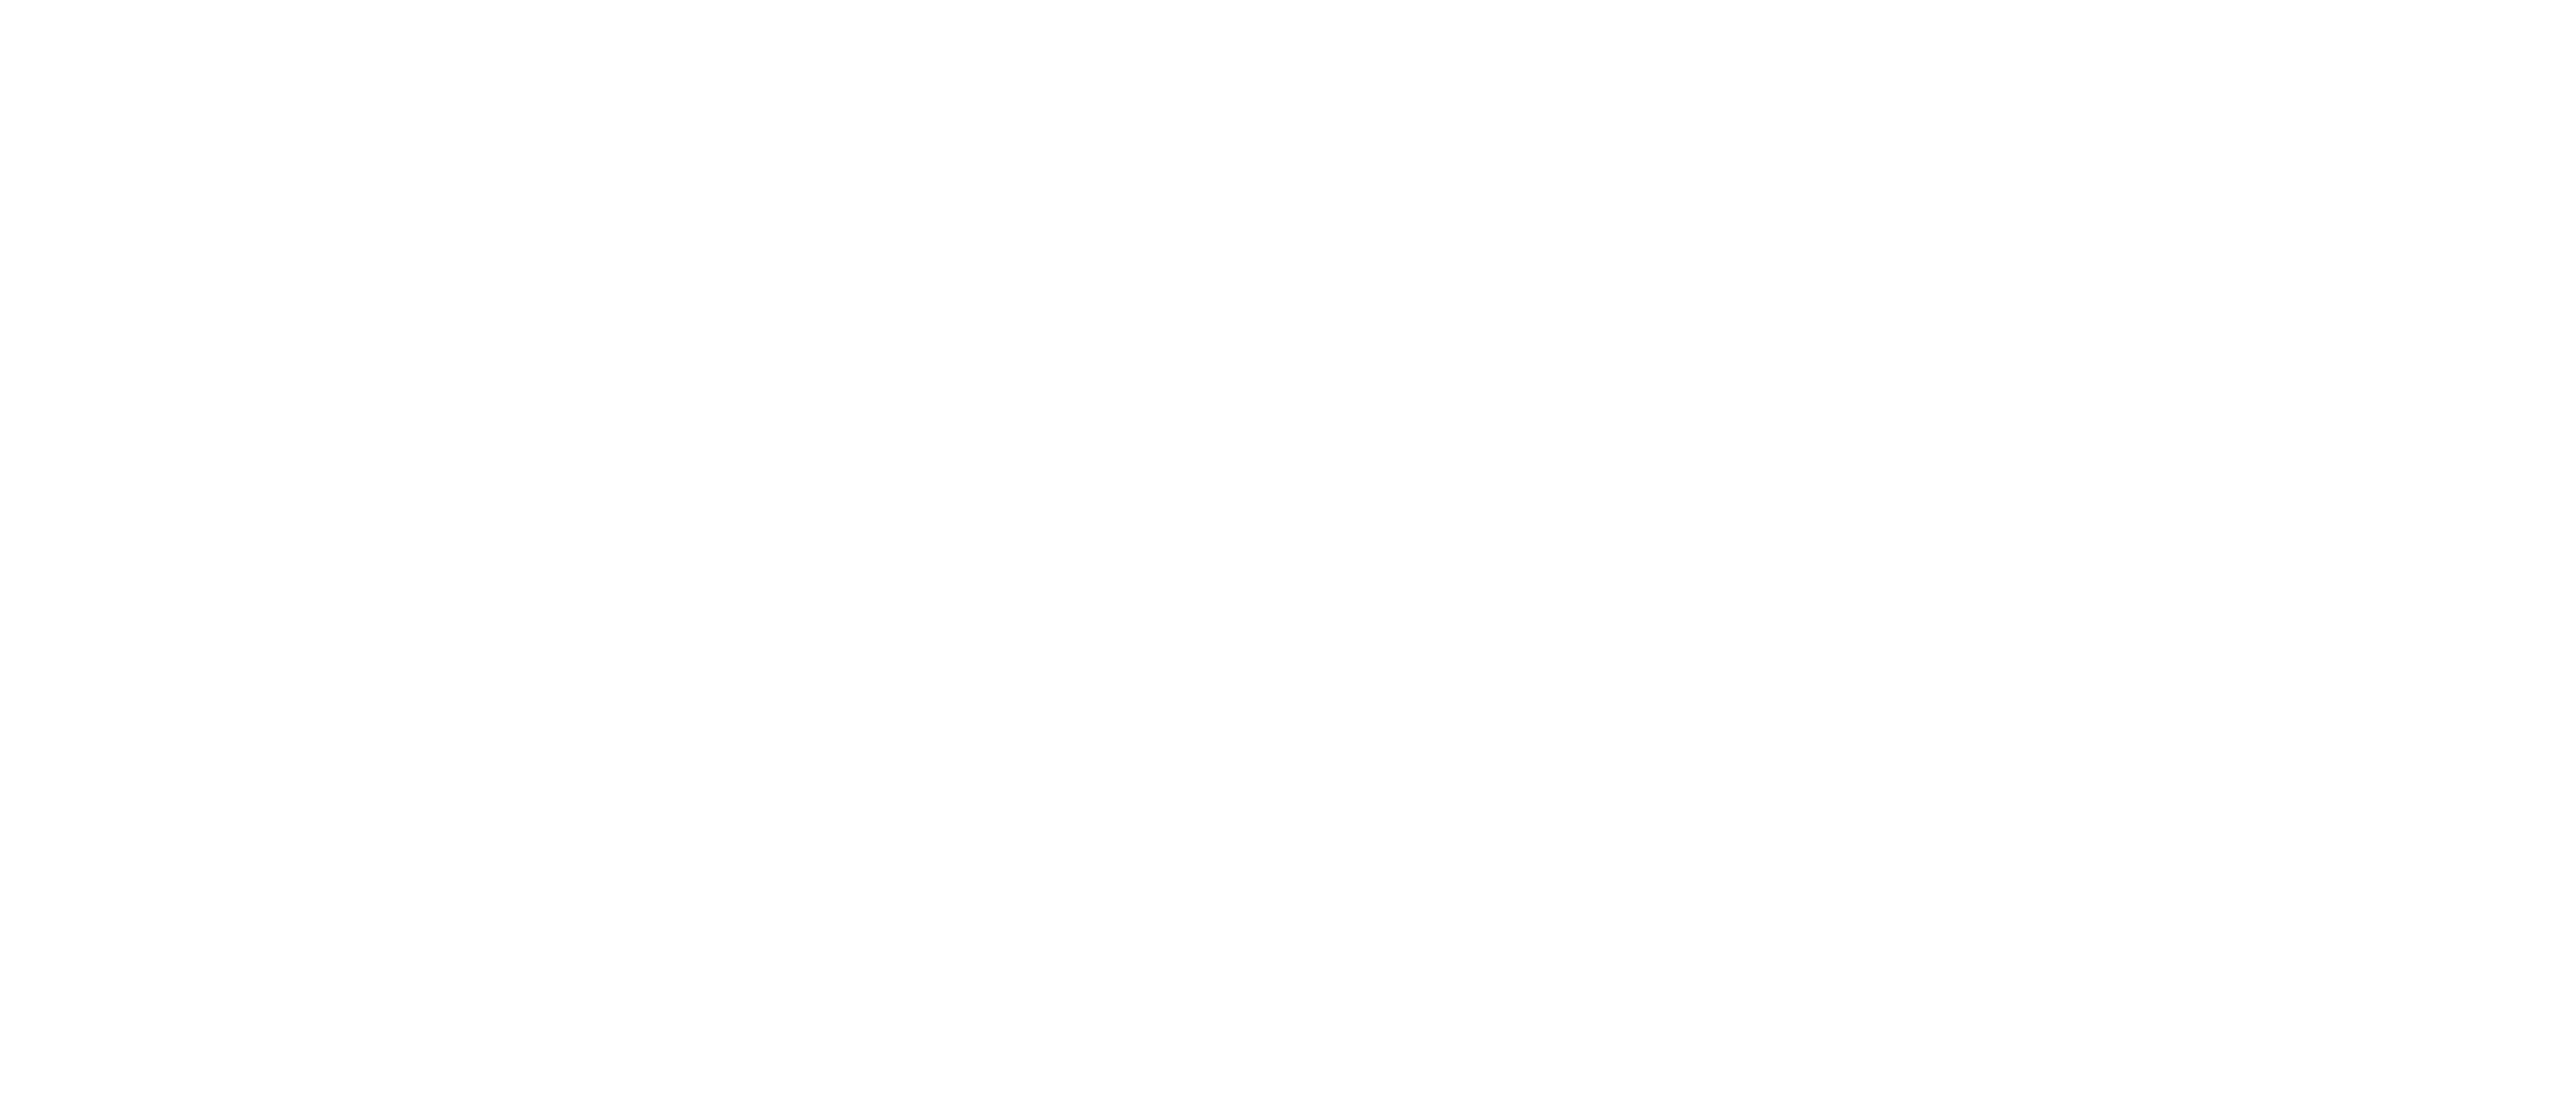 Tangled Bank Conservation